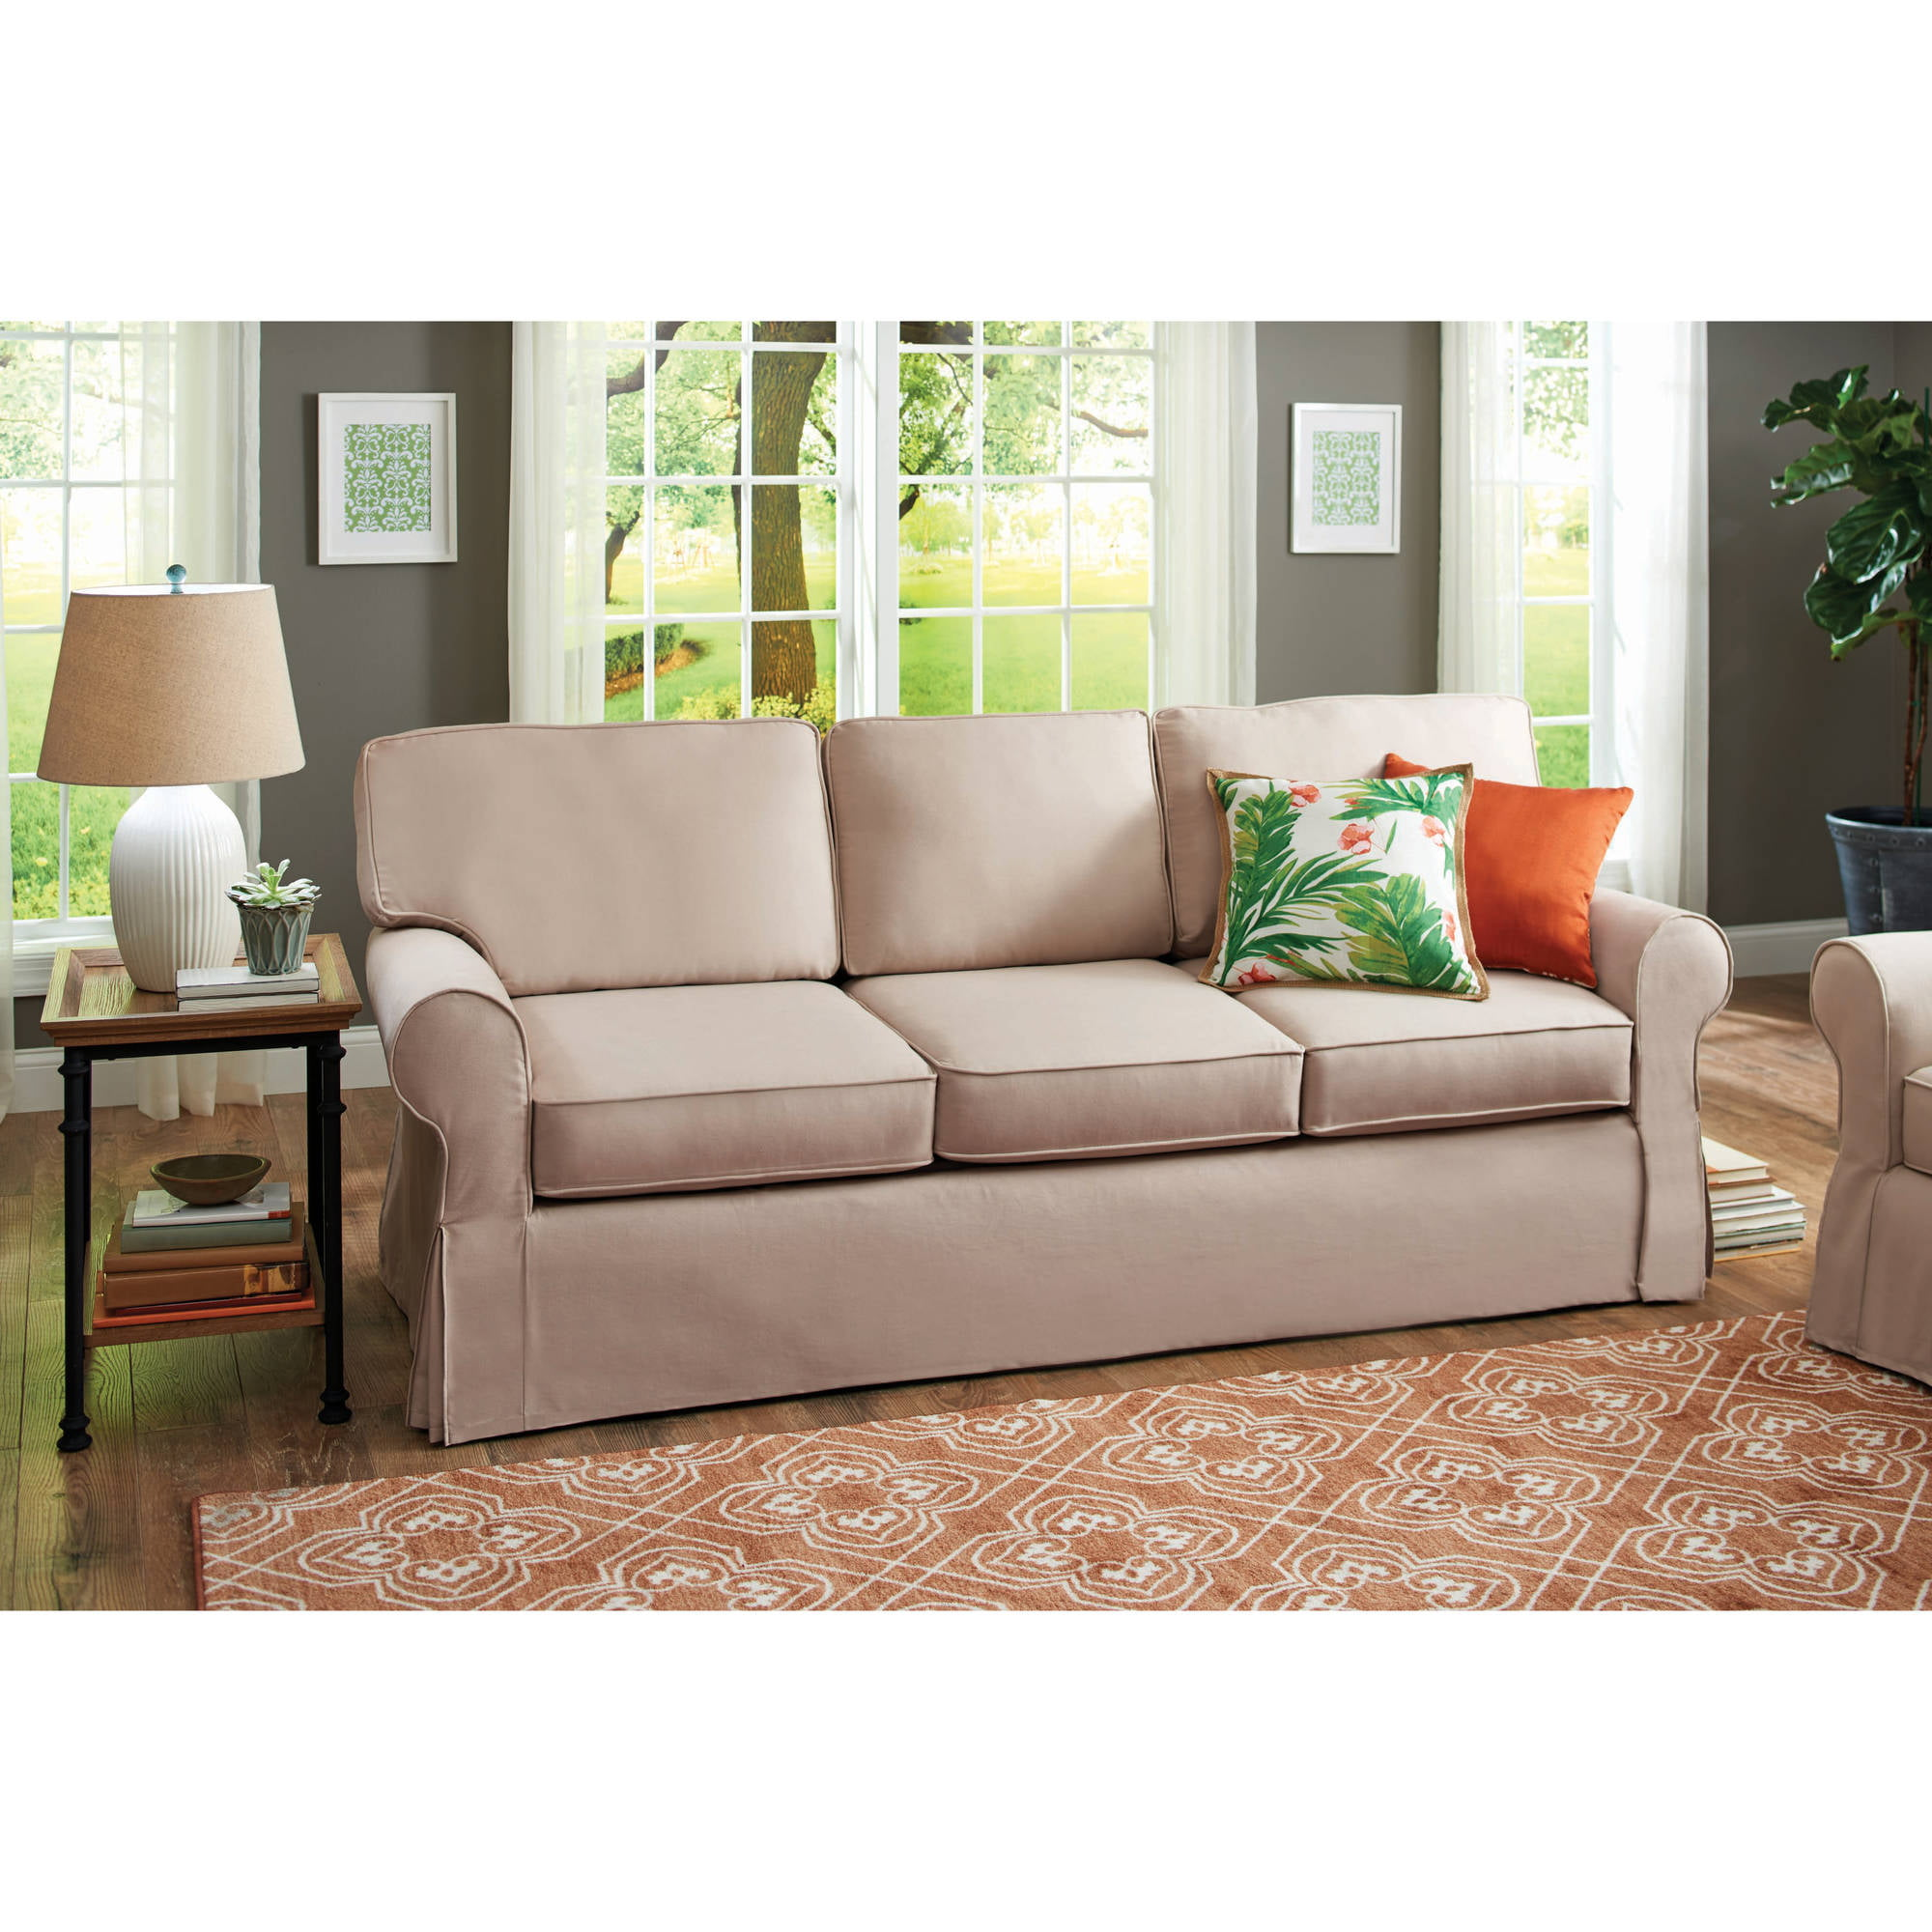 raise stretch bar the slipcovers sofa slipcover p